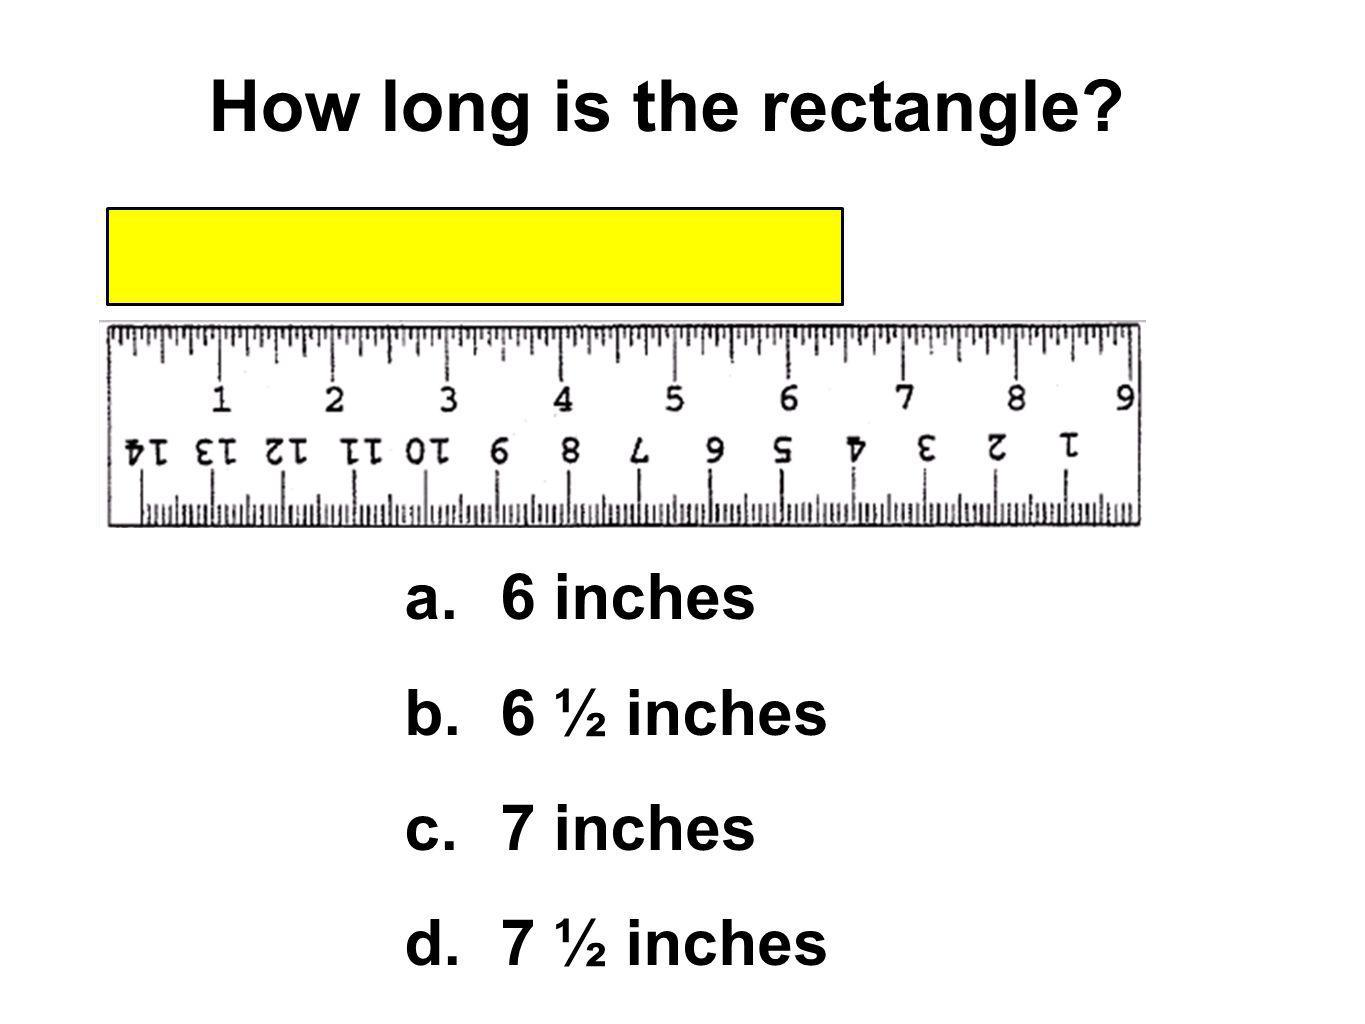 How long is the rectangle